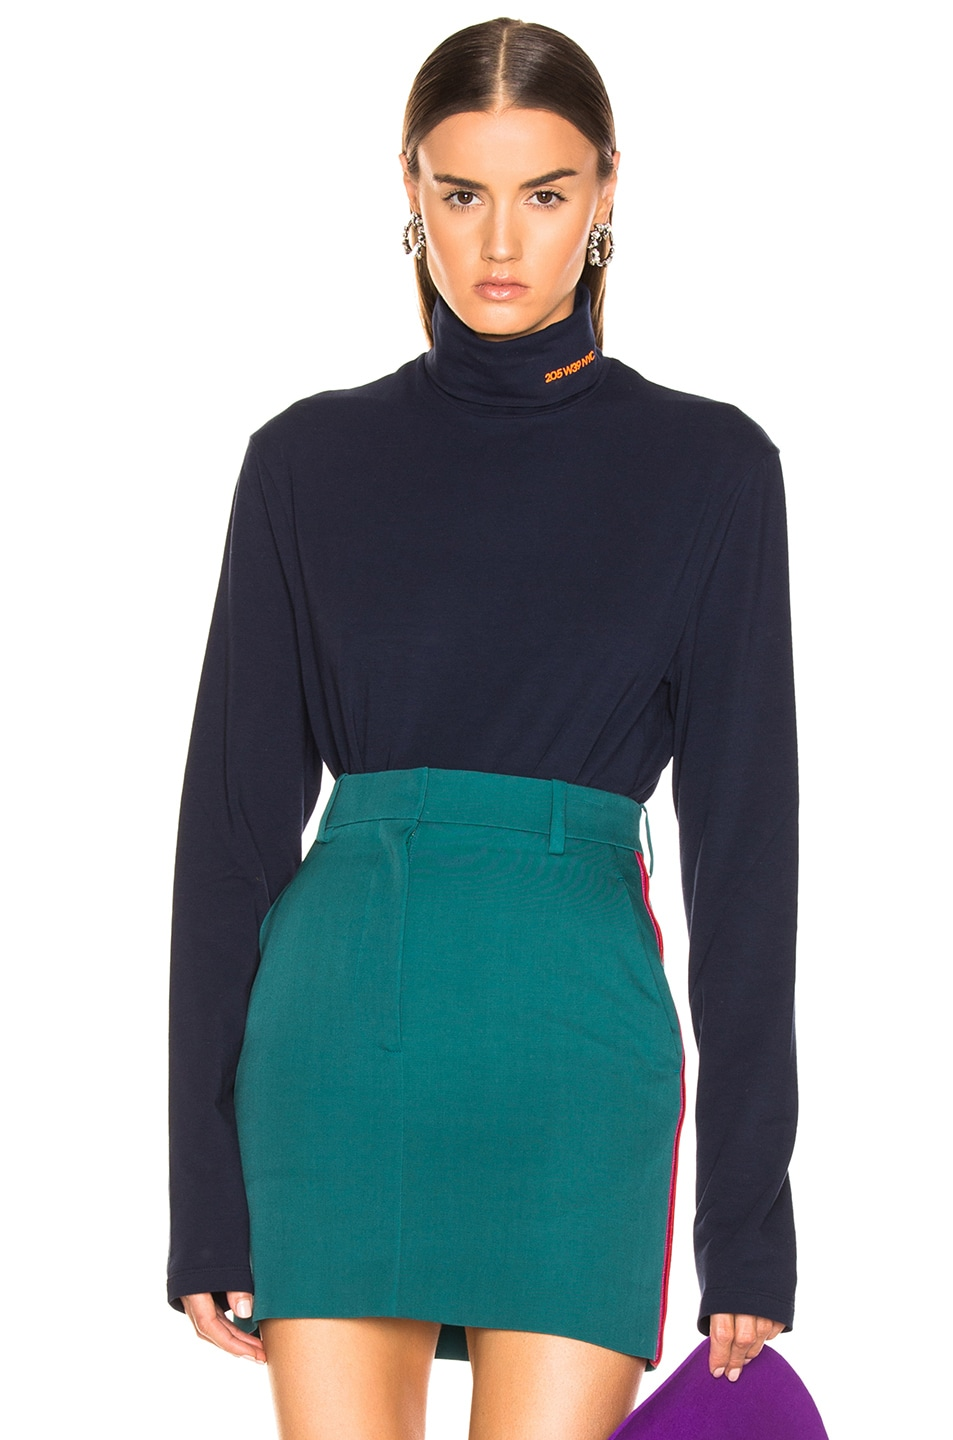 Image 1 of CALVIN KLEIN 205W39NYC Stretch Jersey in Marine